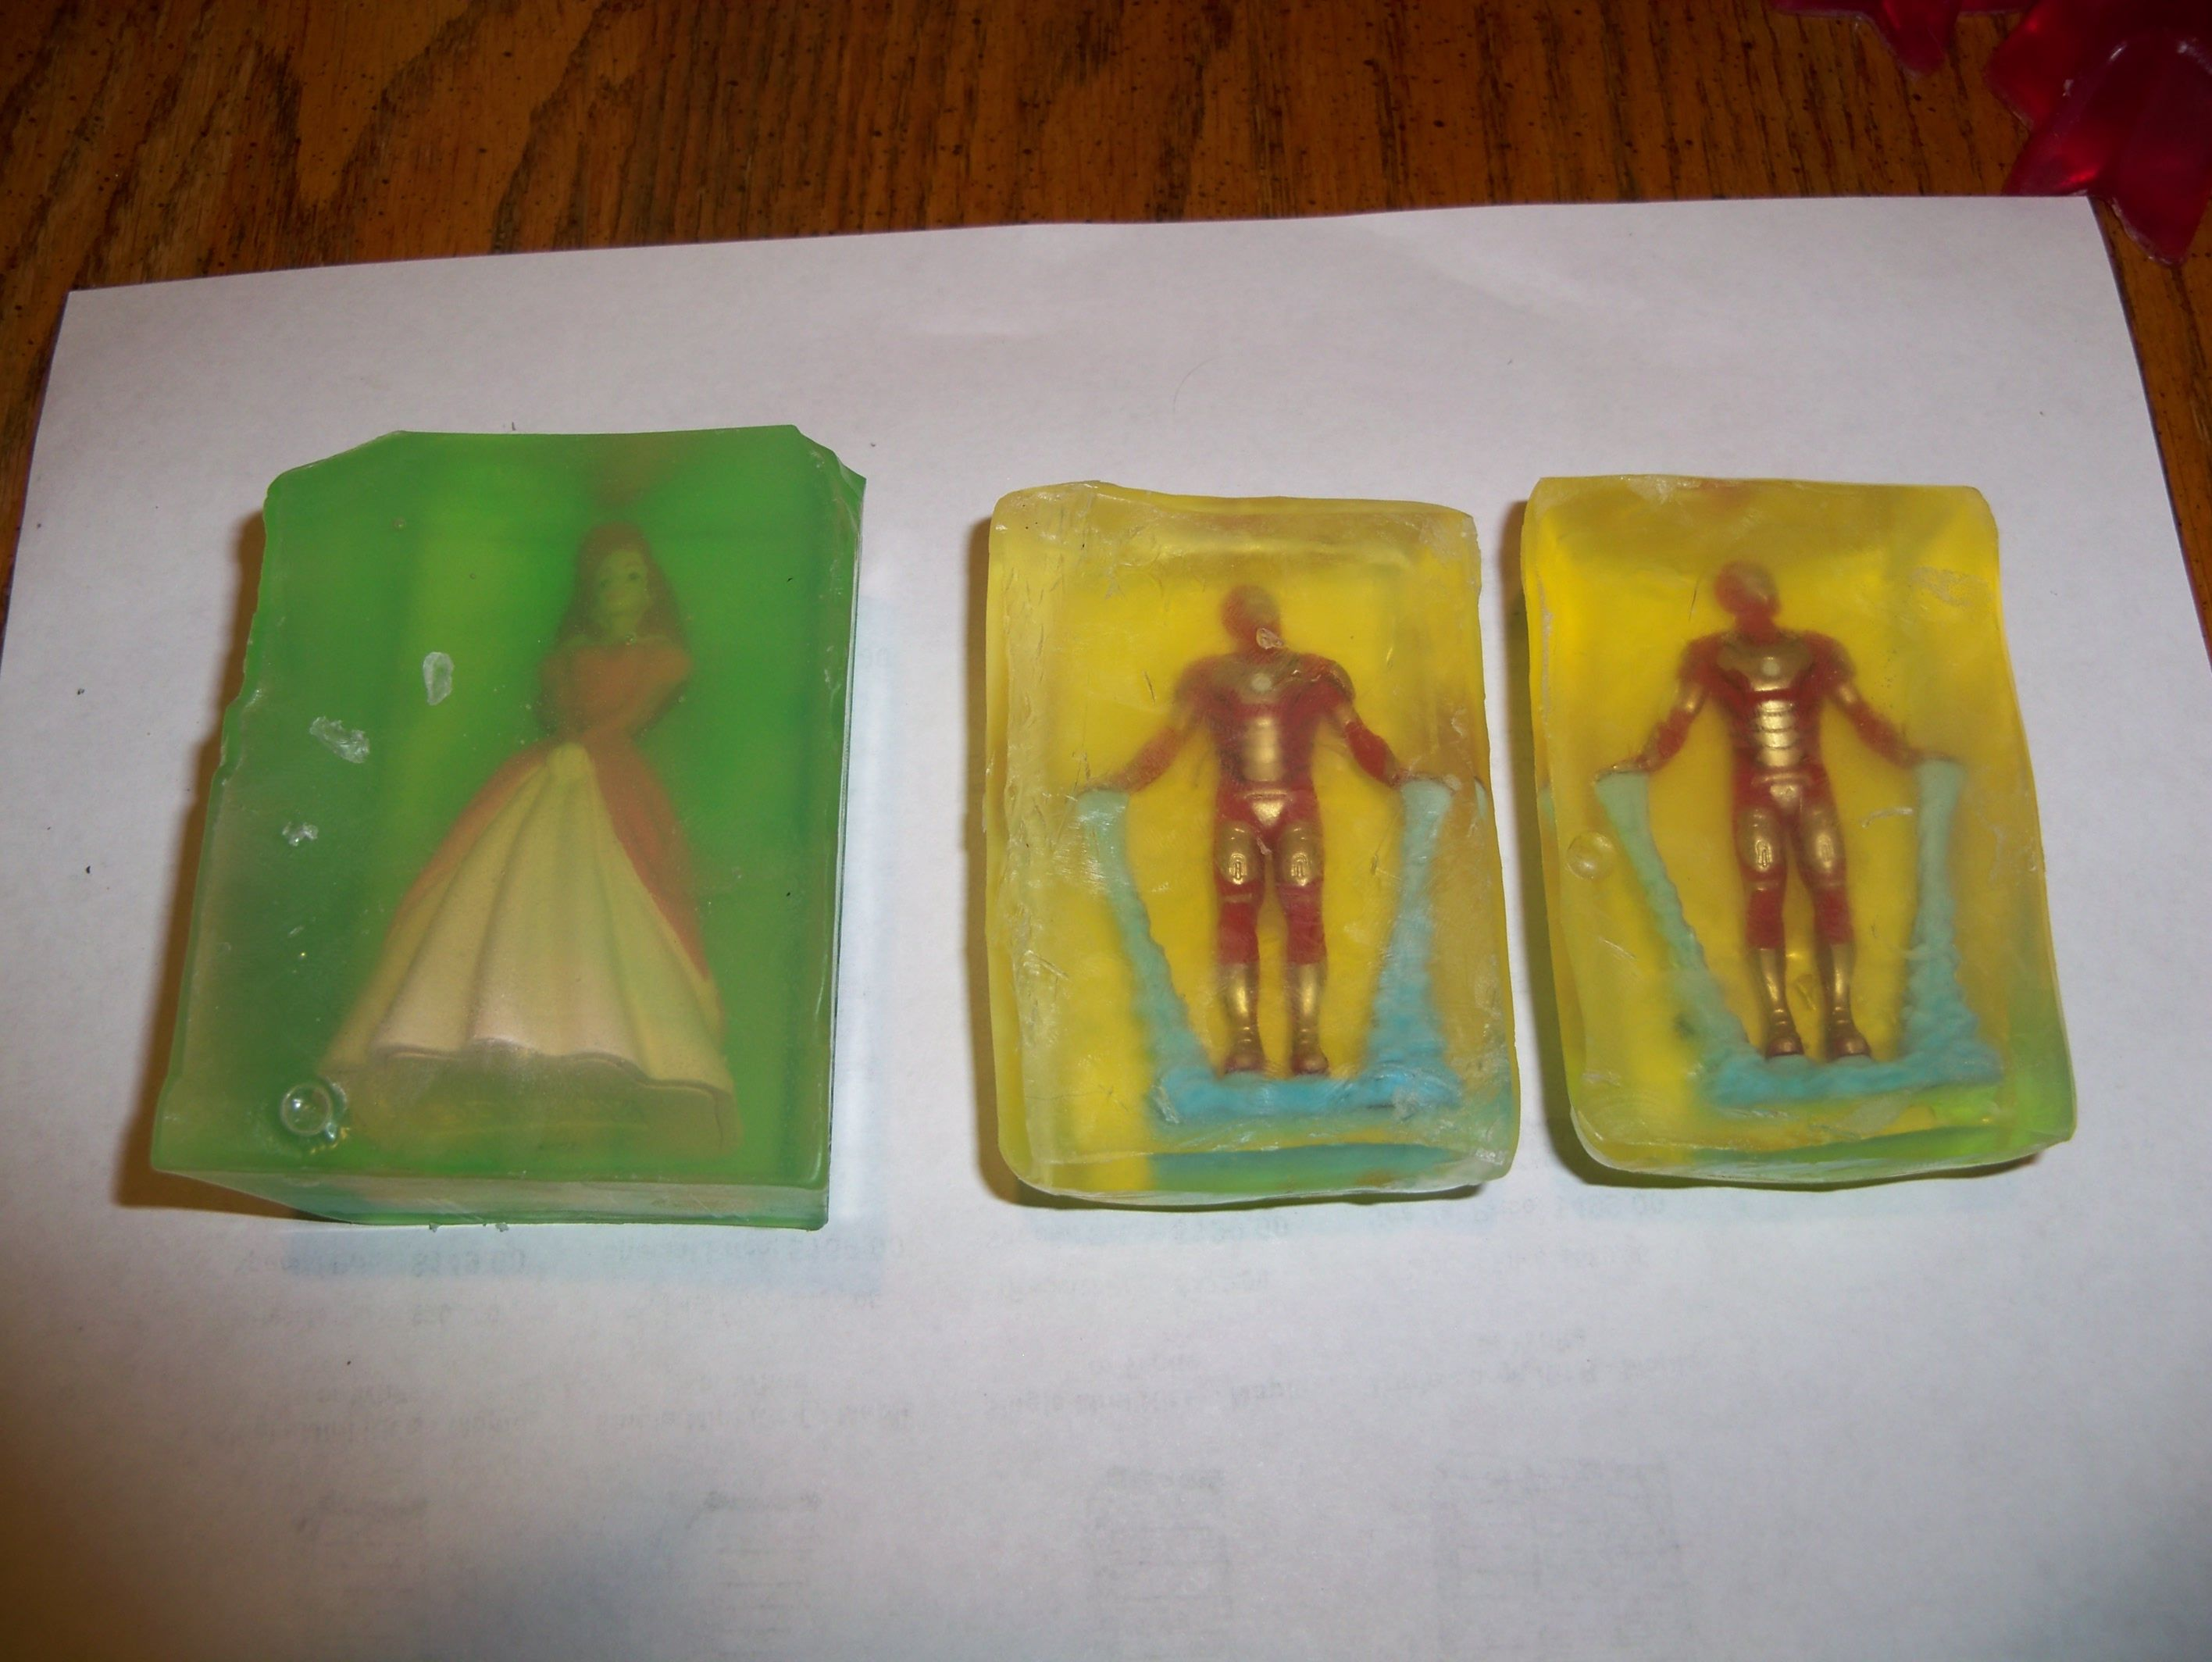 Had fun making embedded soaps for nieces and nephews